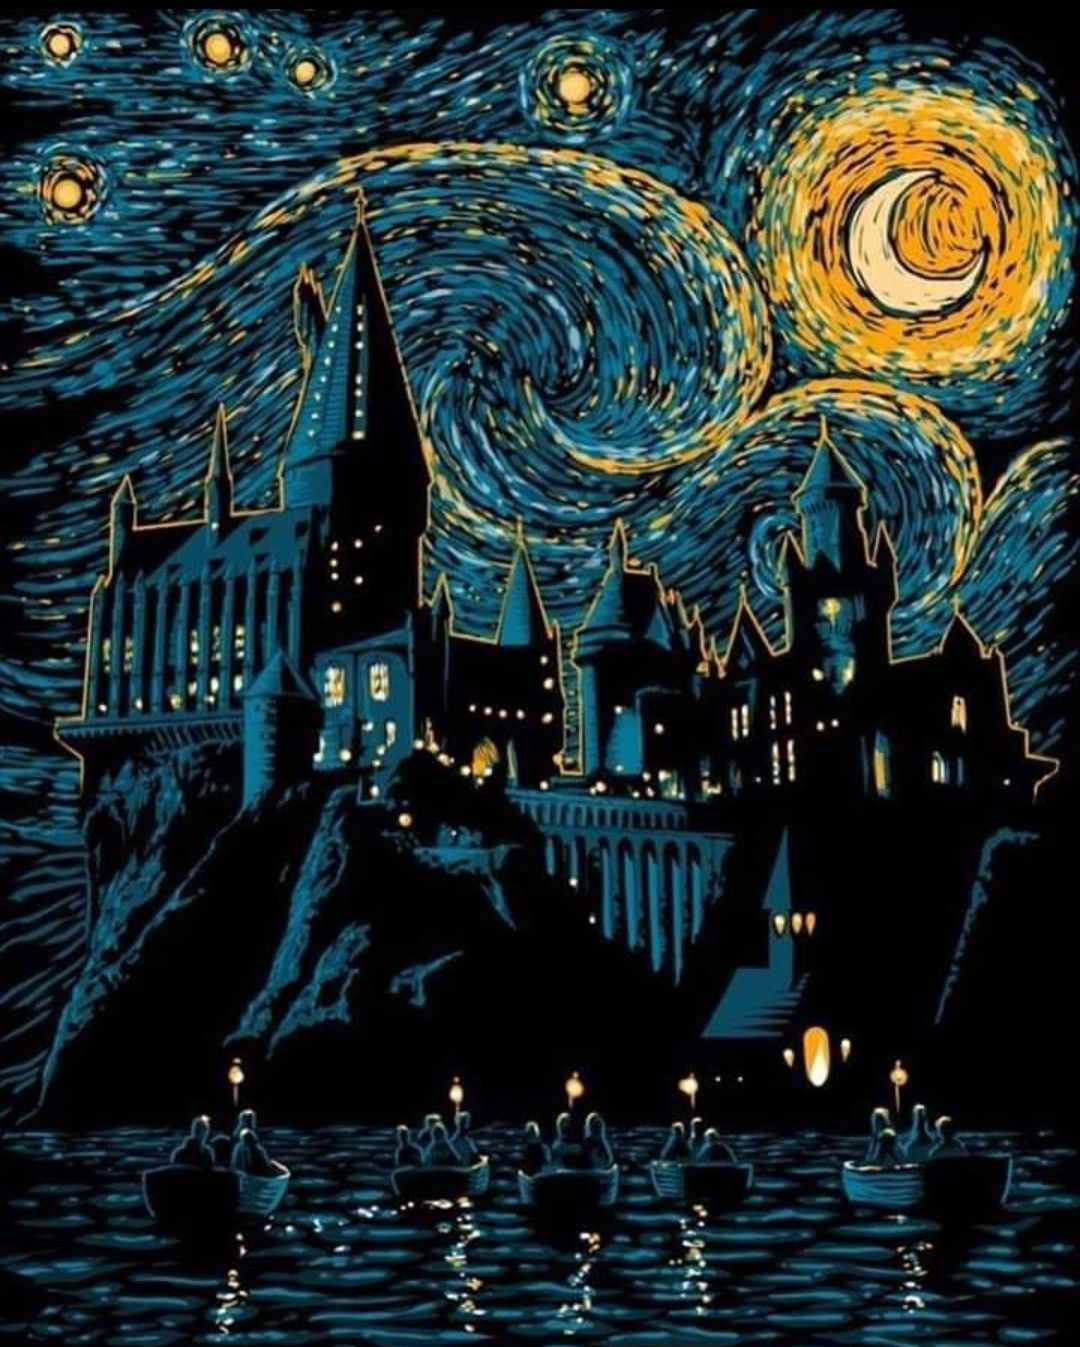 Hogwarts Starry Night Harry Potter Wallpaper Harry Potter Art Harry Potter Facts